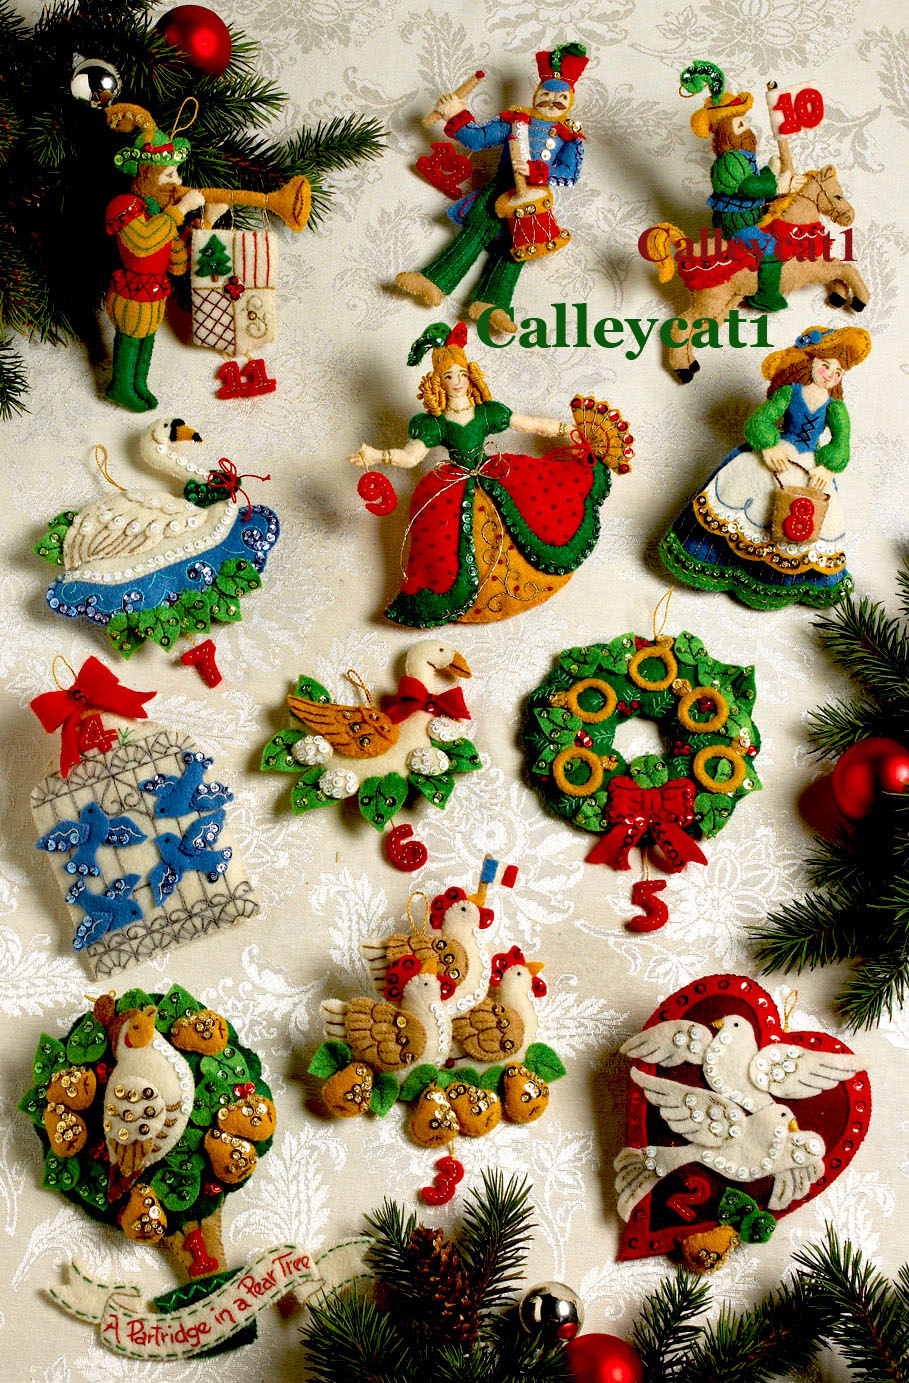 12 days of christmas bucilla felt ornament kit 86066 - Christmas Tree Decorating Ensemble Kits